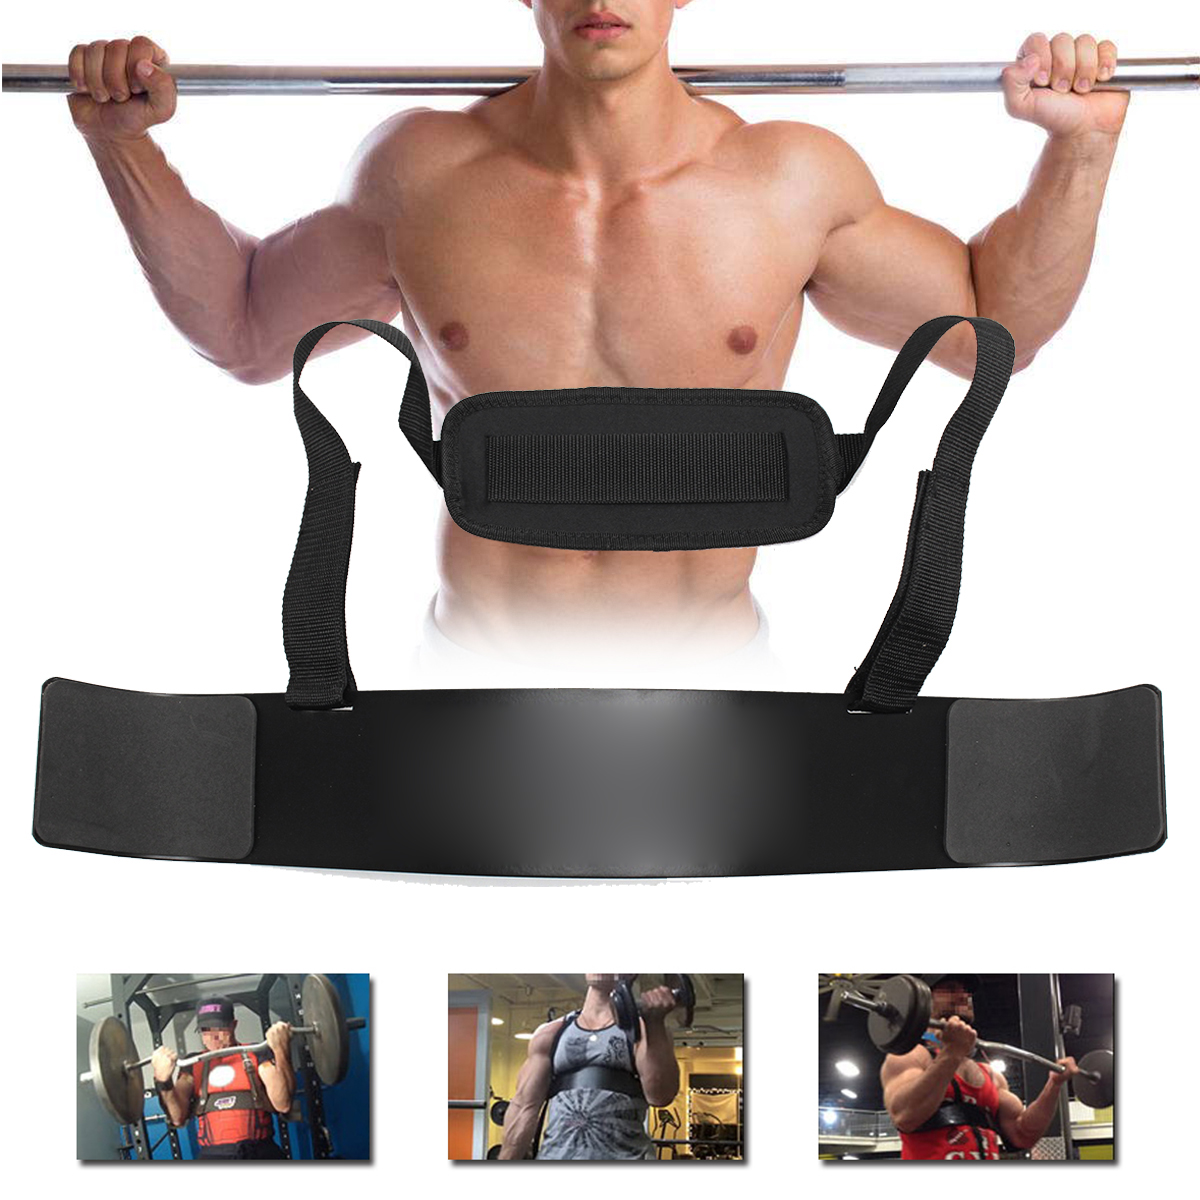 Weightlifting Bodybuilding Arm Blasters Biceps Isolator Curl Strap Barbell Support Brace Belt Training Fitness Gym Equipment